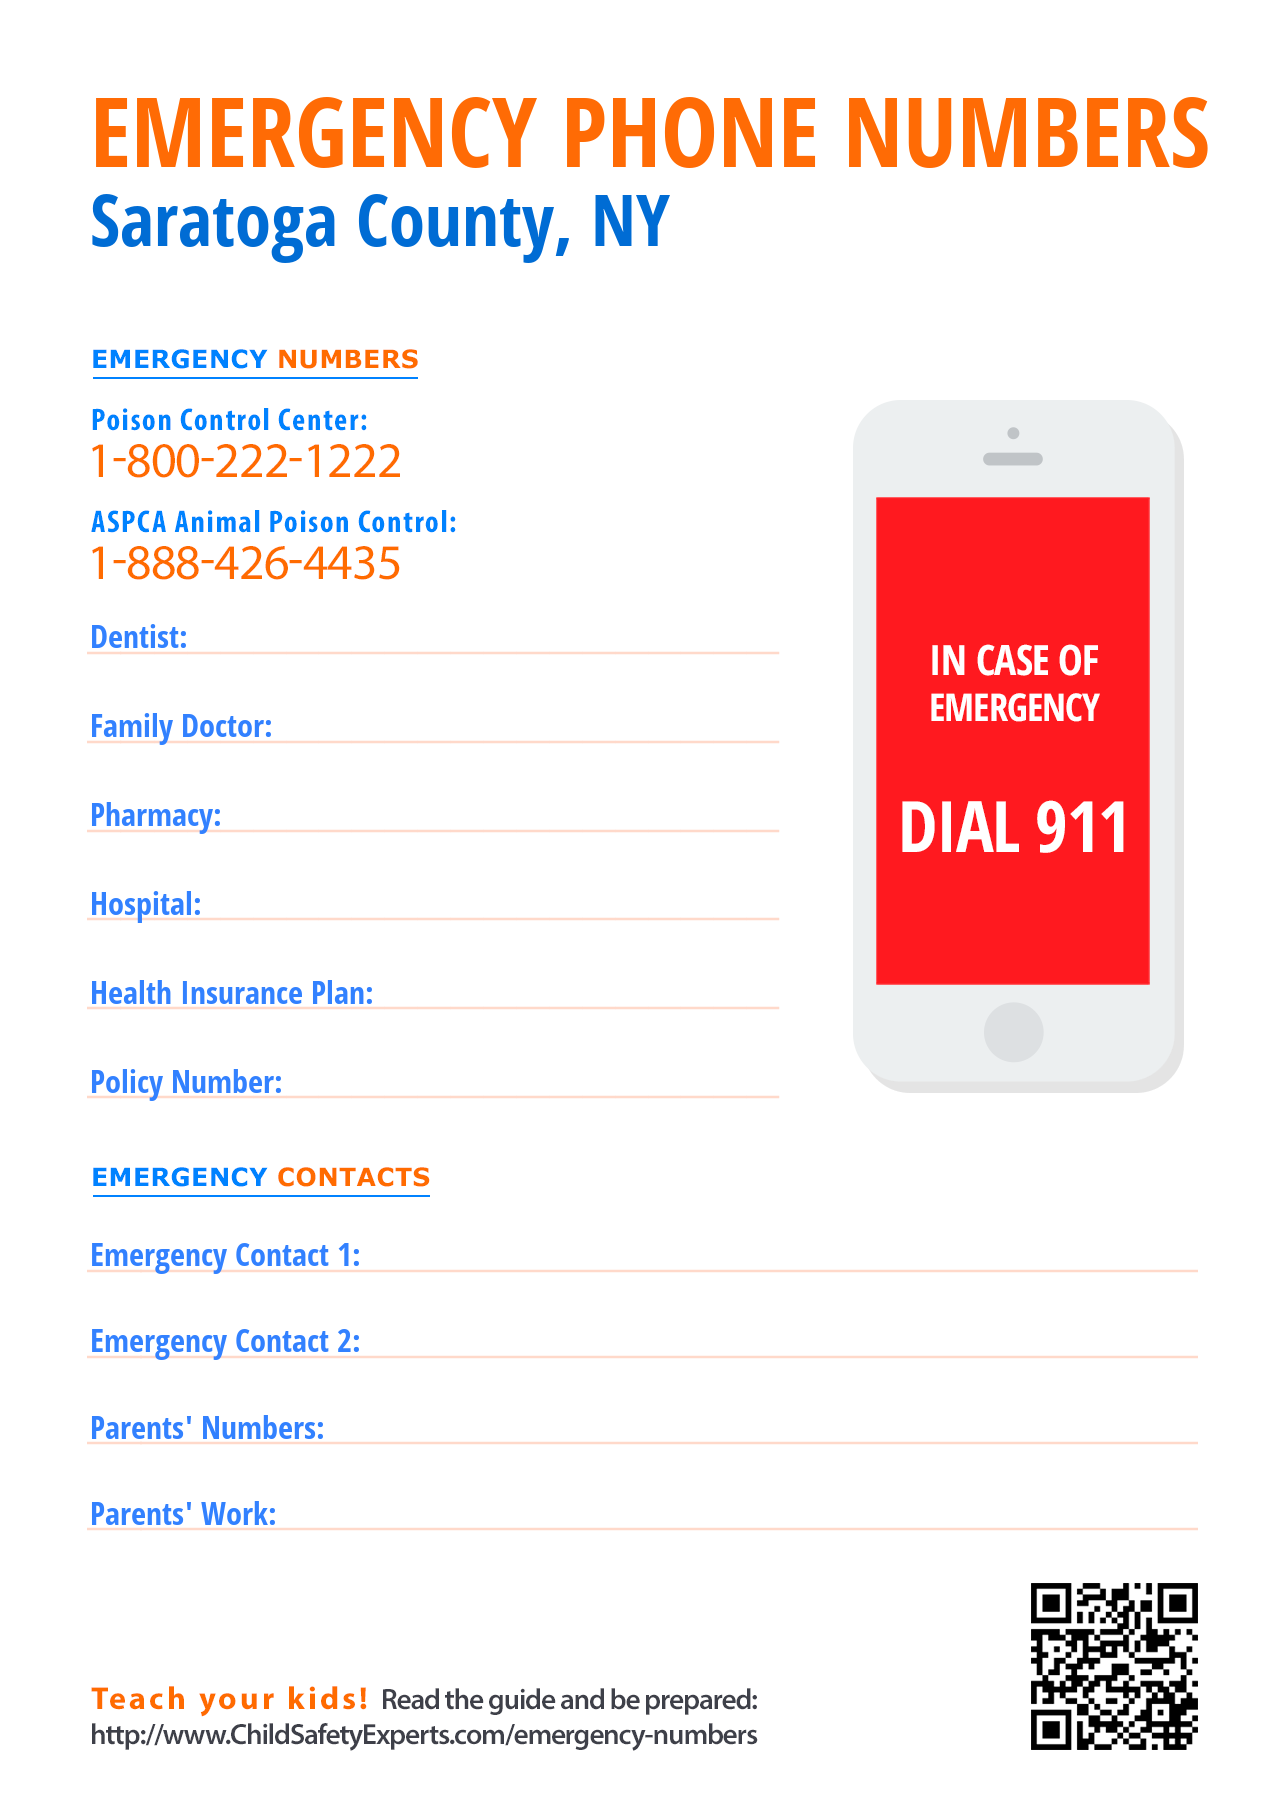 Important emergency phone numbers in Saratoga County, New York